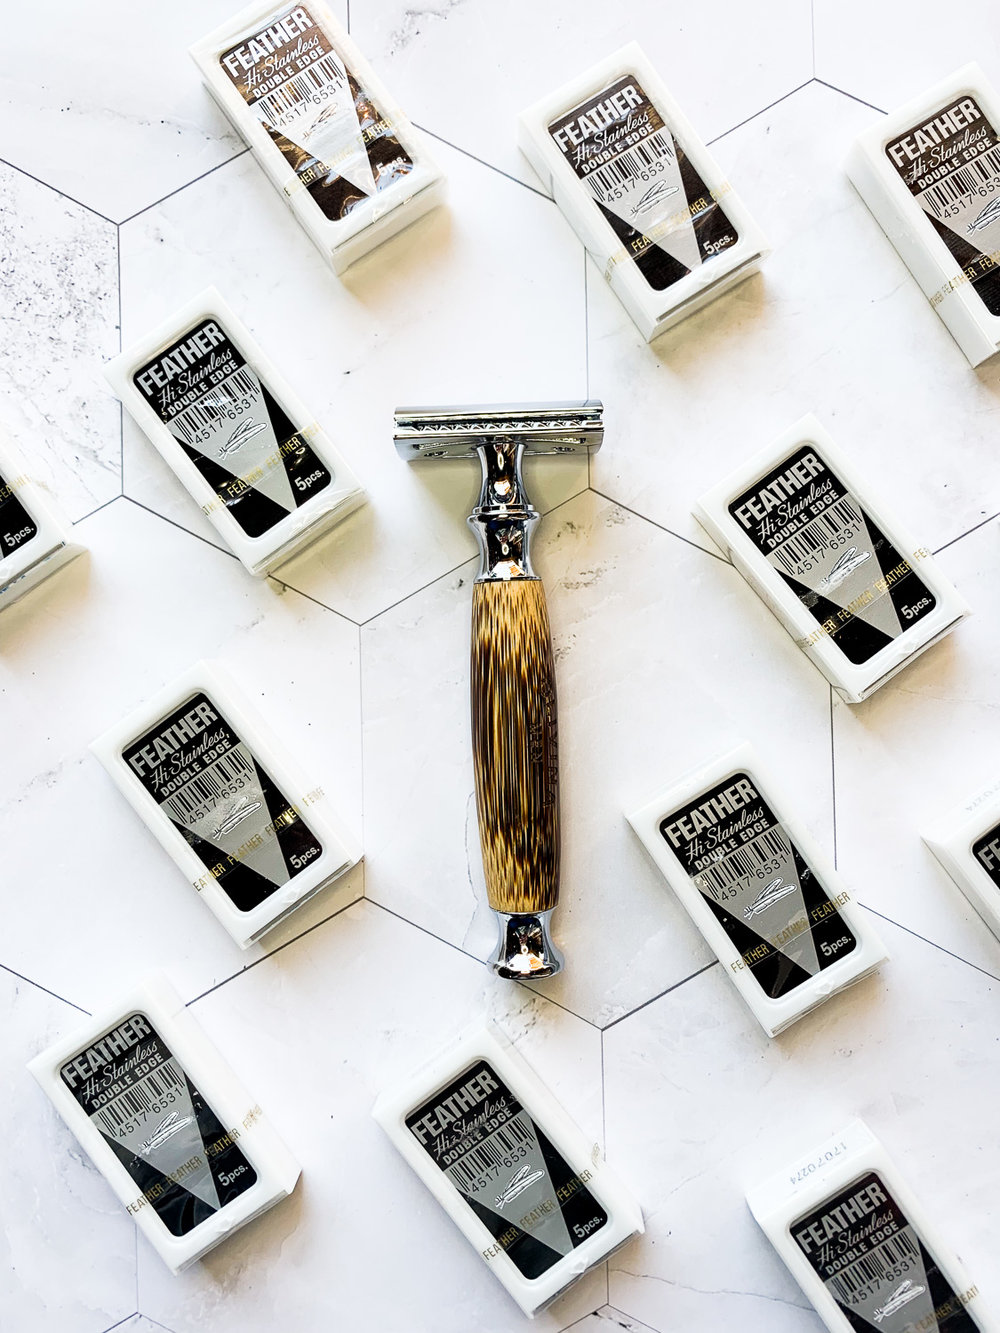 Deluxe Safety Razor - Available in chrome, 'ivory', or bamboo.